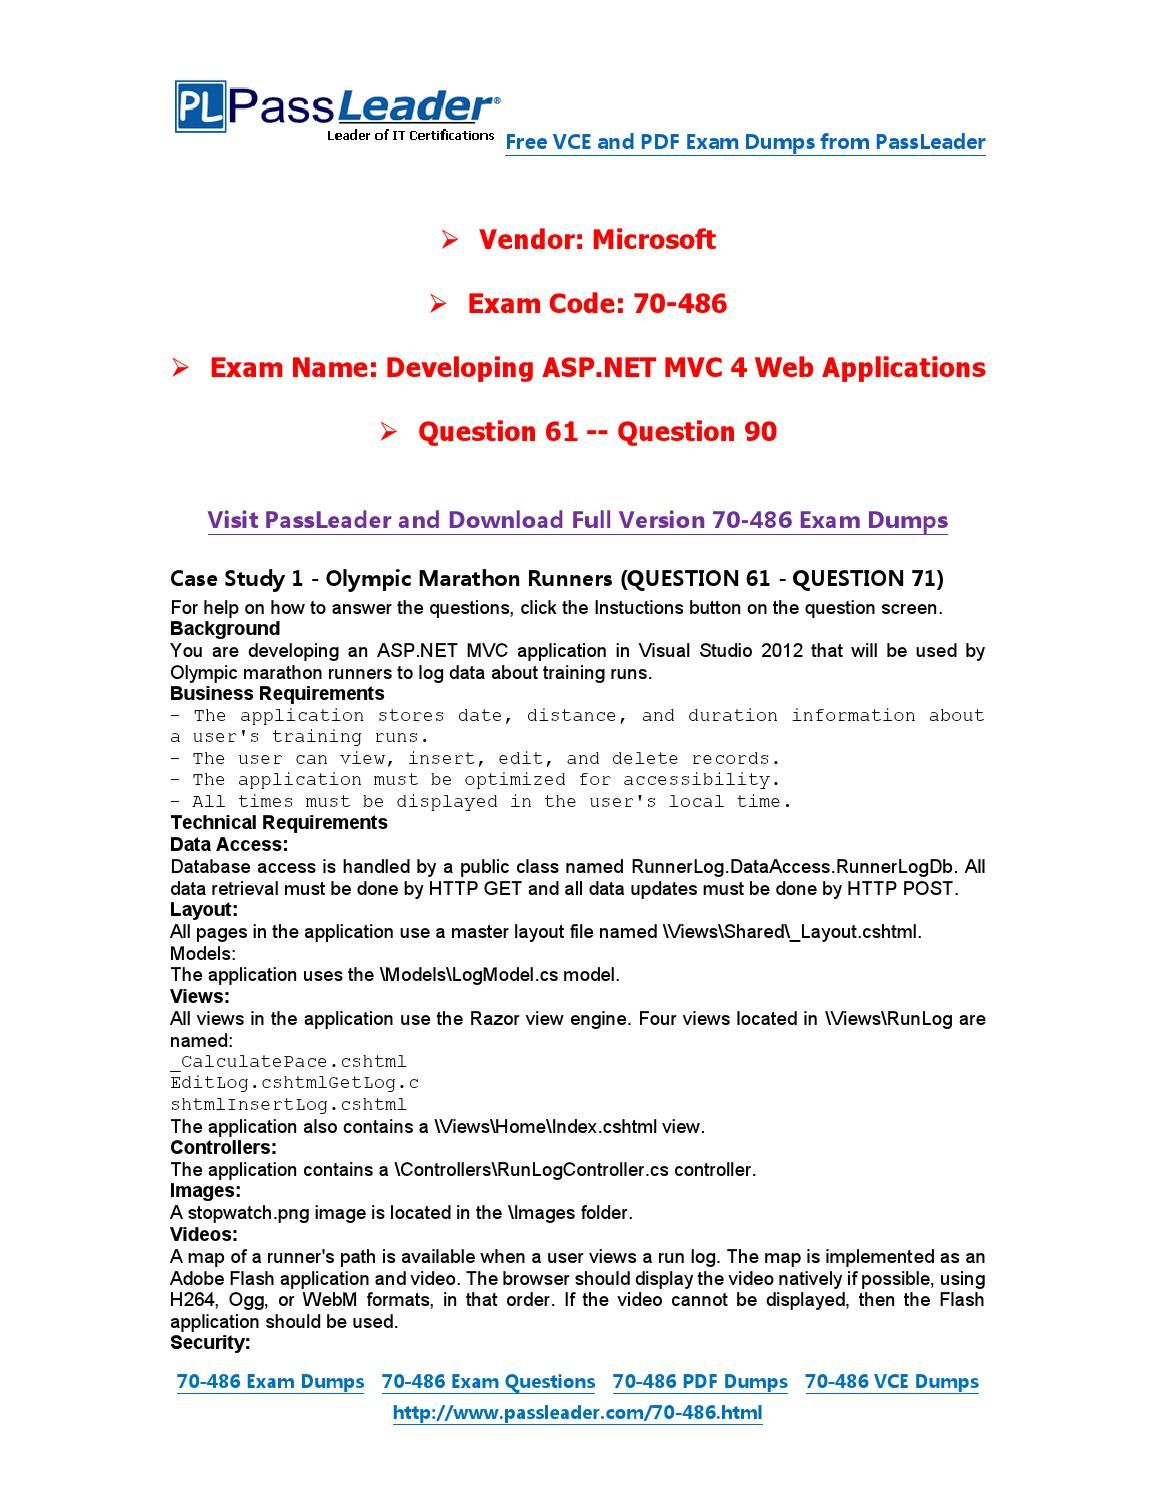 70 486 exam dumps with pdf and vce download 121 end 70 486 70 486 exam dumps with pdf and vce download 121 end 70 486 exam dumps with pdf and vce download pinterest xflitez Choice Image